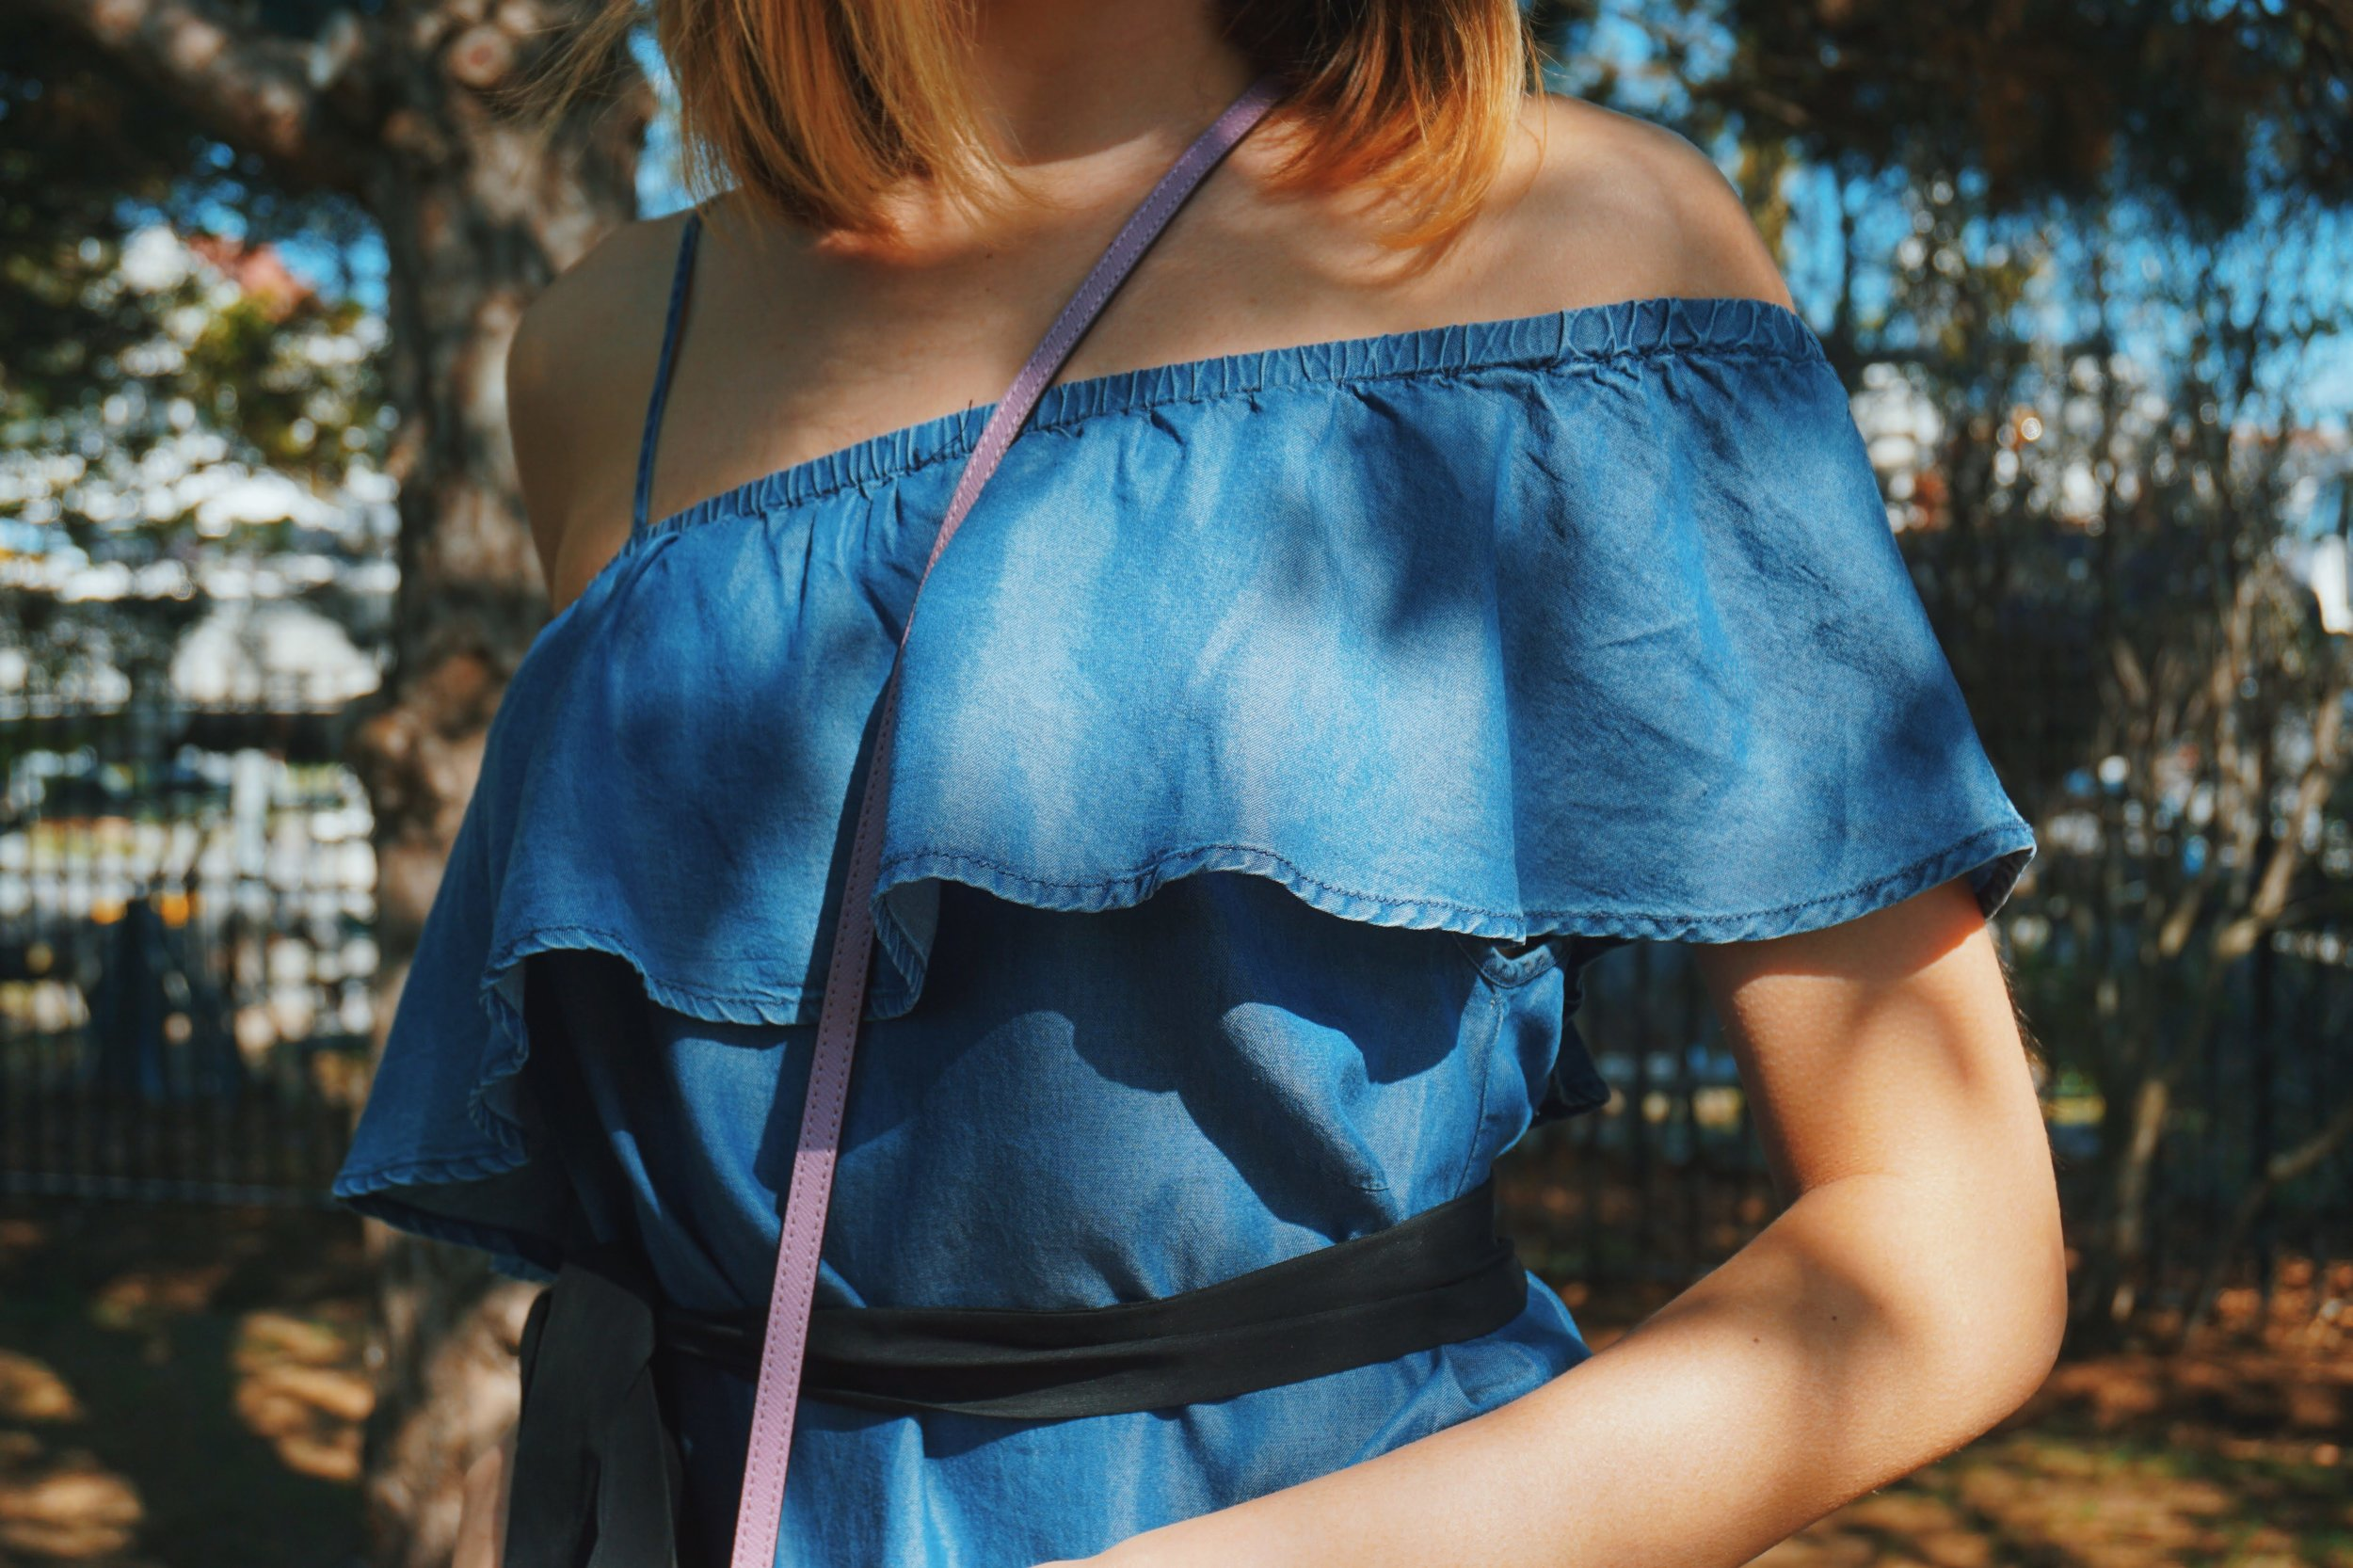 Outfit details: denim one shoulder off dress, black tie on the waist, ruffles on the chest area of the dress.